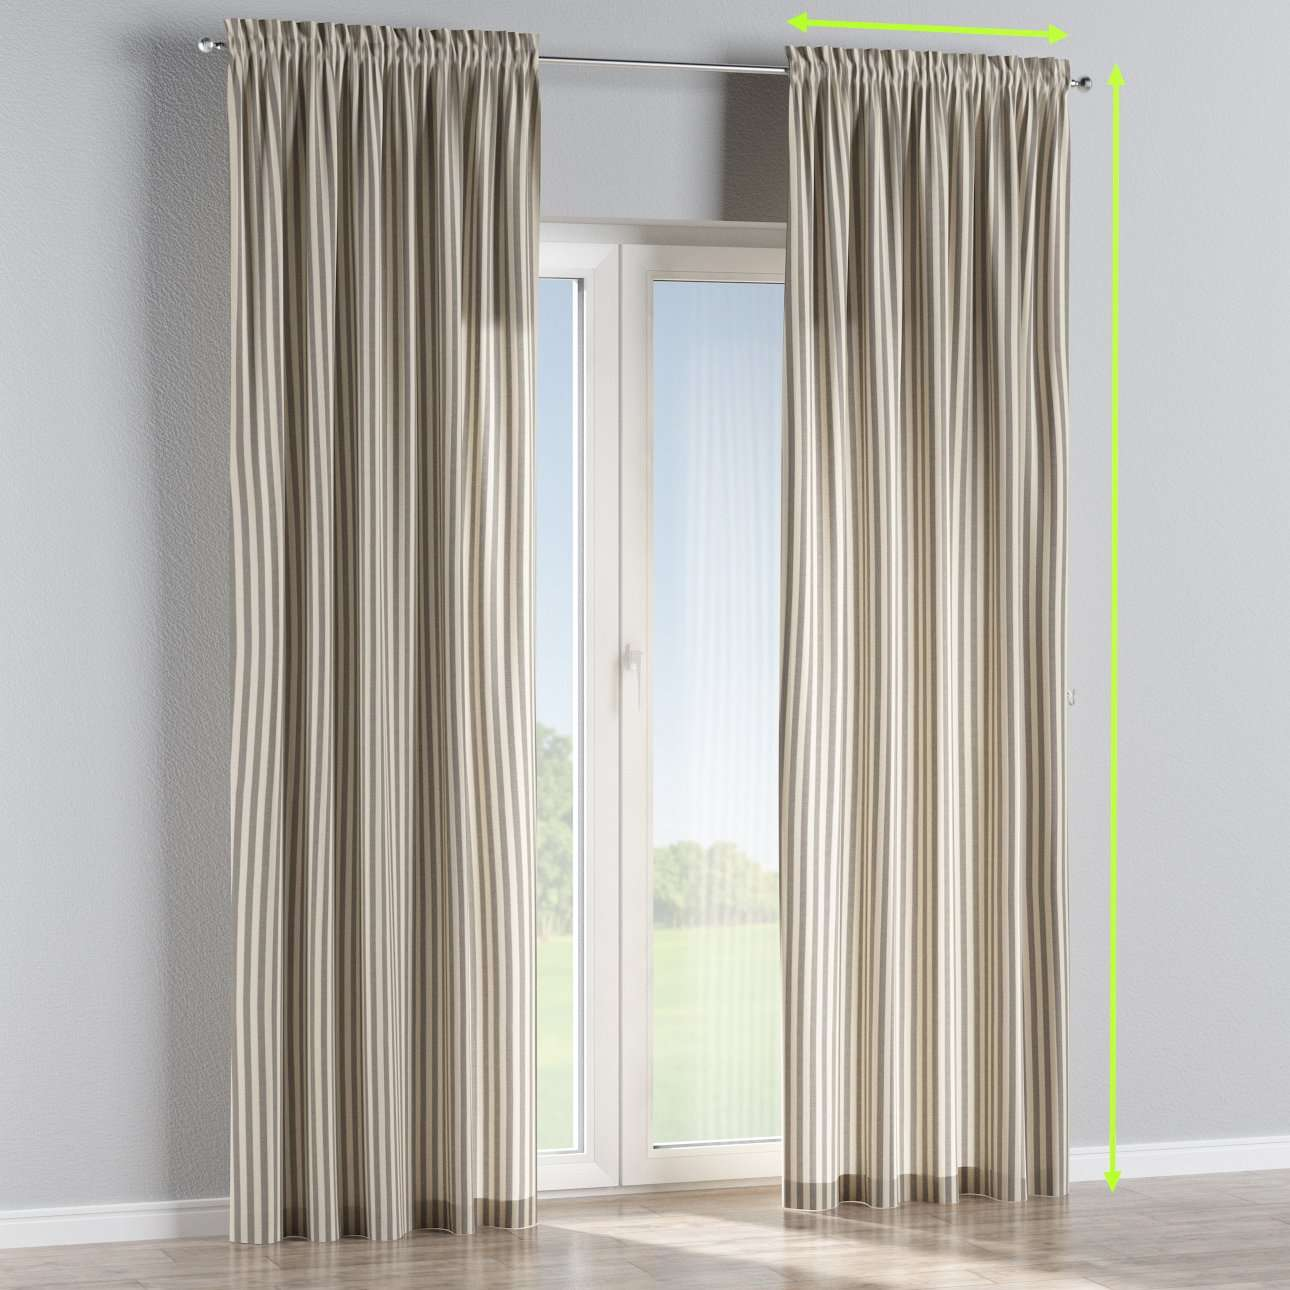 Slot and frill lined curtains in collection Quadro, fabric: 136-12